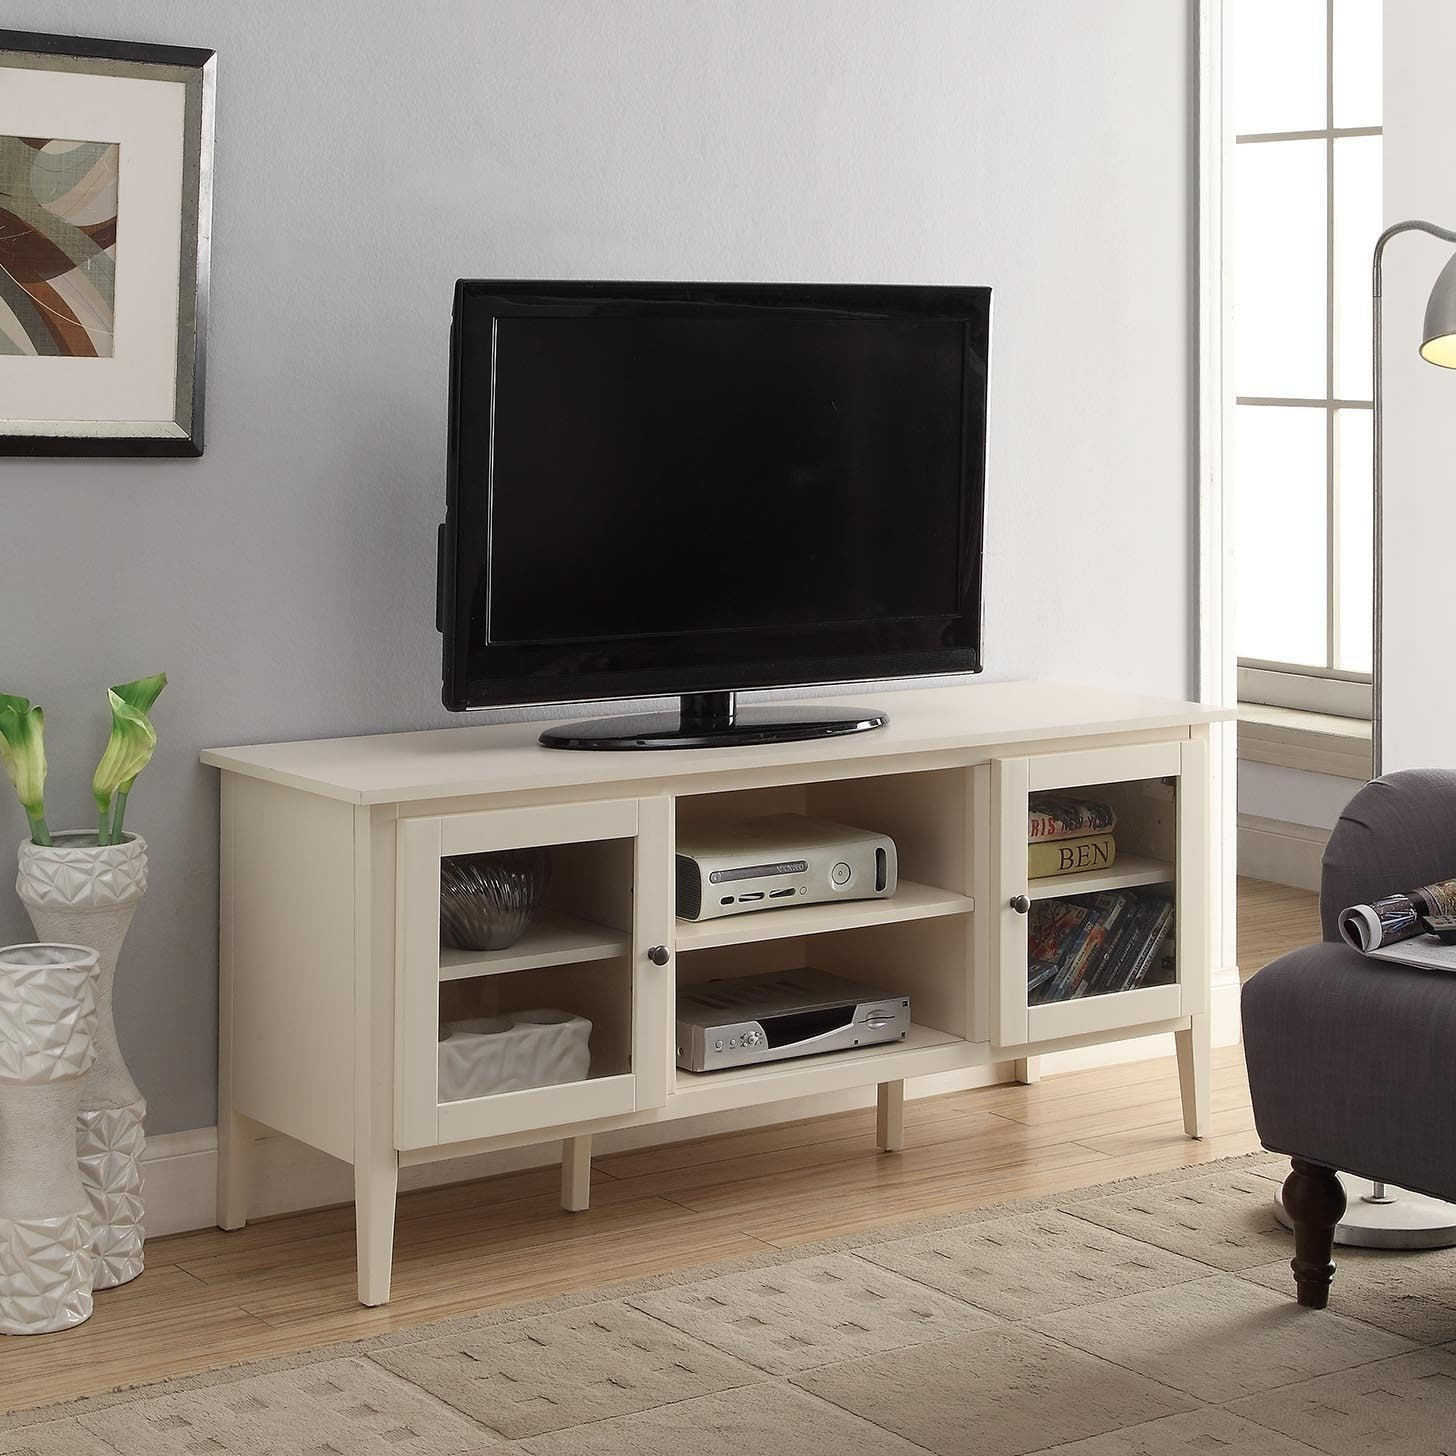 Shop Briarwood Home Decor Wood 52 Inch Tv Stand Free Shipping